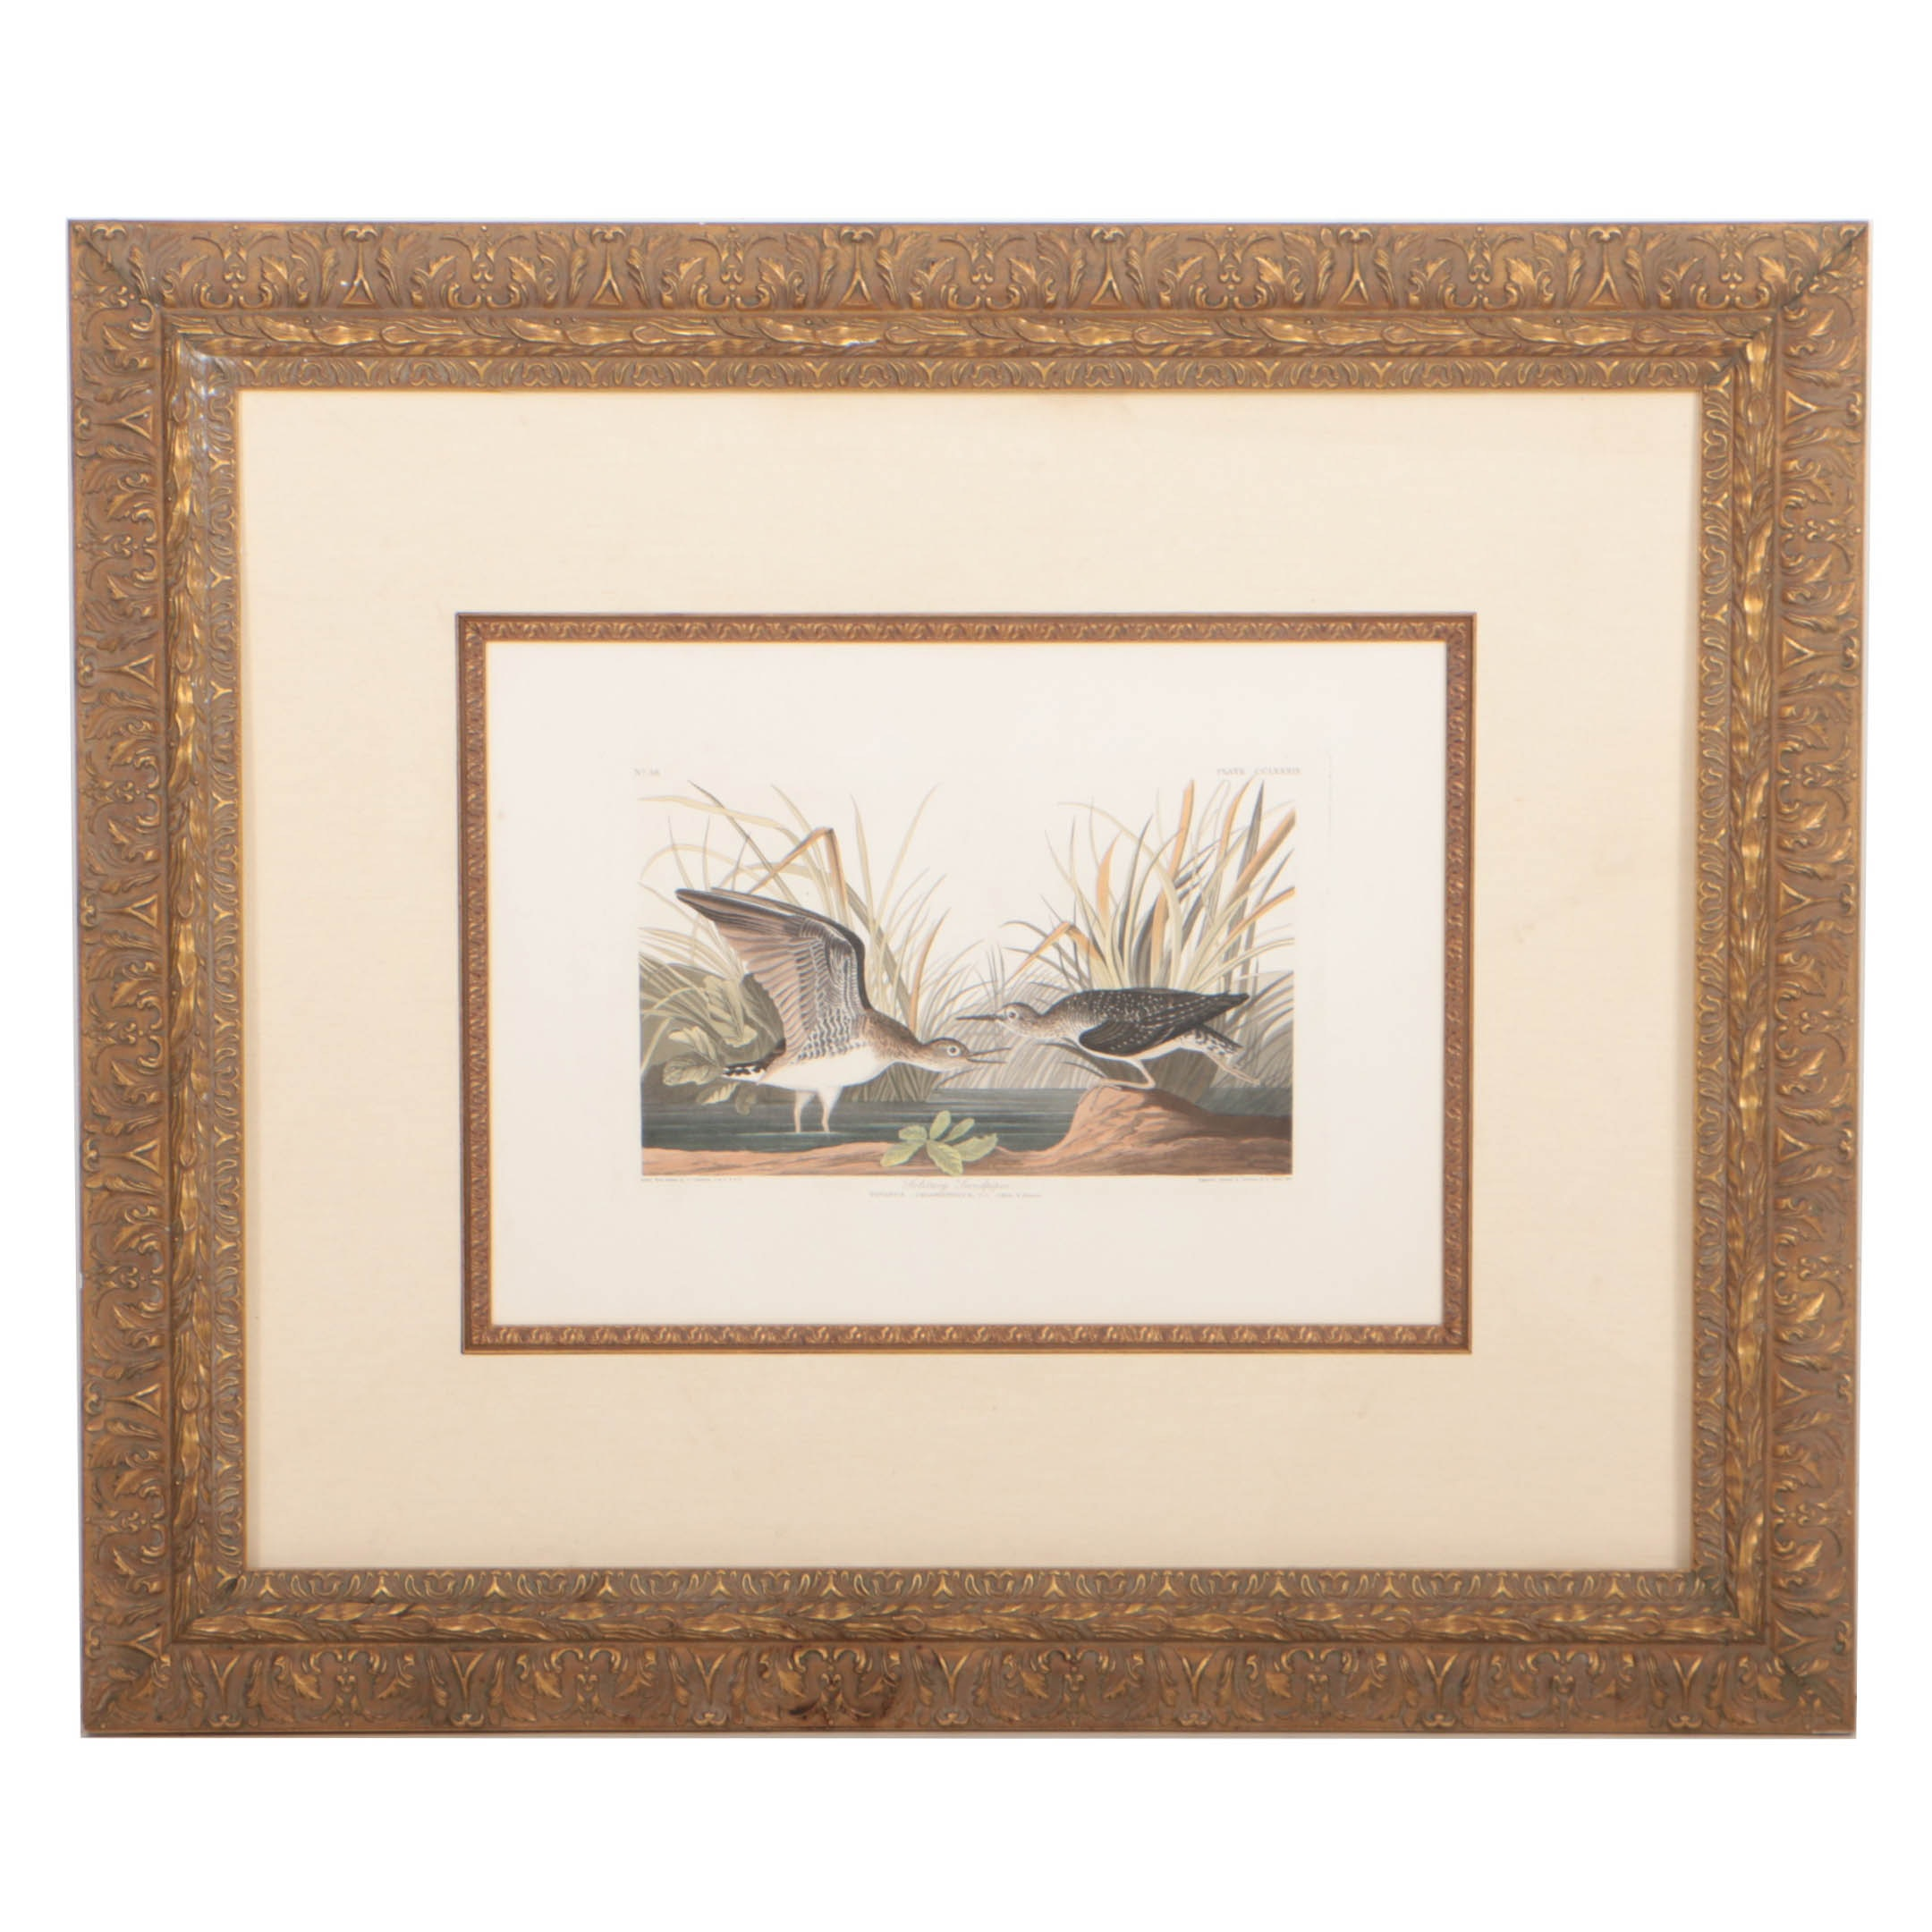 """R. Havell Engraving and Aquatint After J.J. Audubon's """"Solitary Sandpiper"""""""